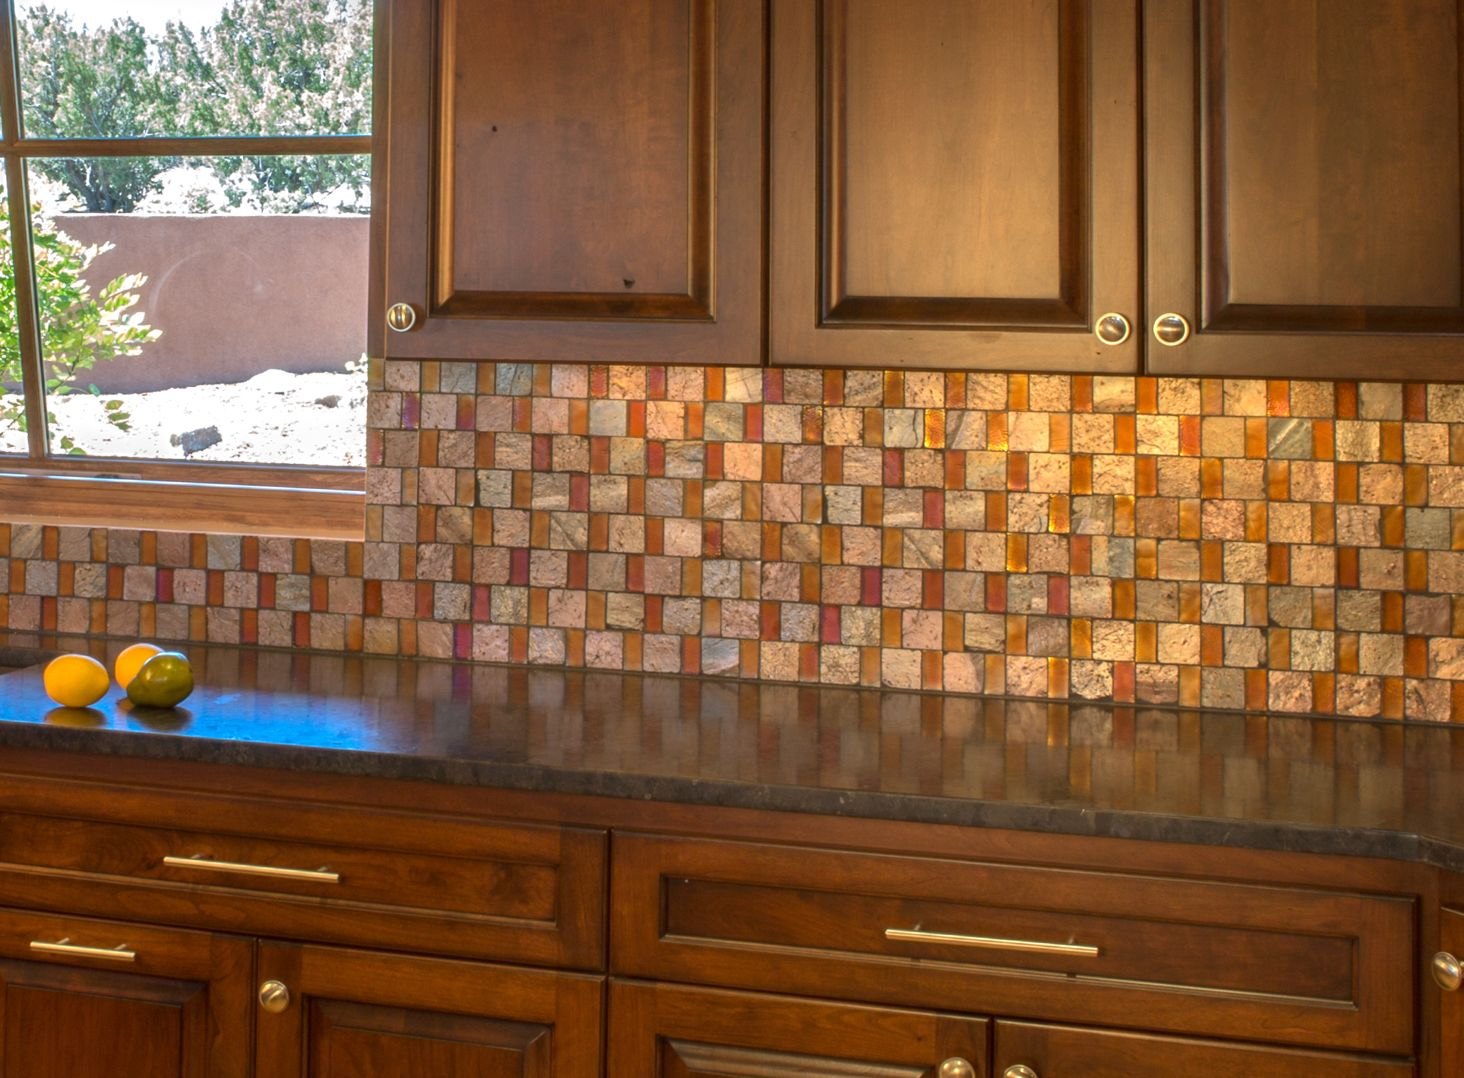 80 best kitchen tile images on pinterest kitchen tiles kitchen by statements copper quartzite and amber colored glass shimmer as a textural back splash for dark granite counter tops in this madera builders built